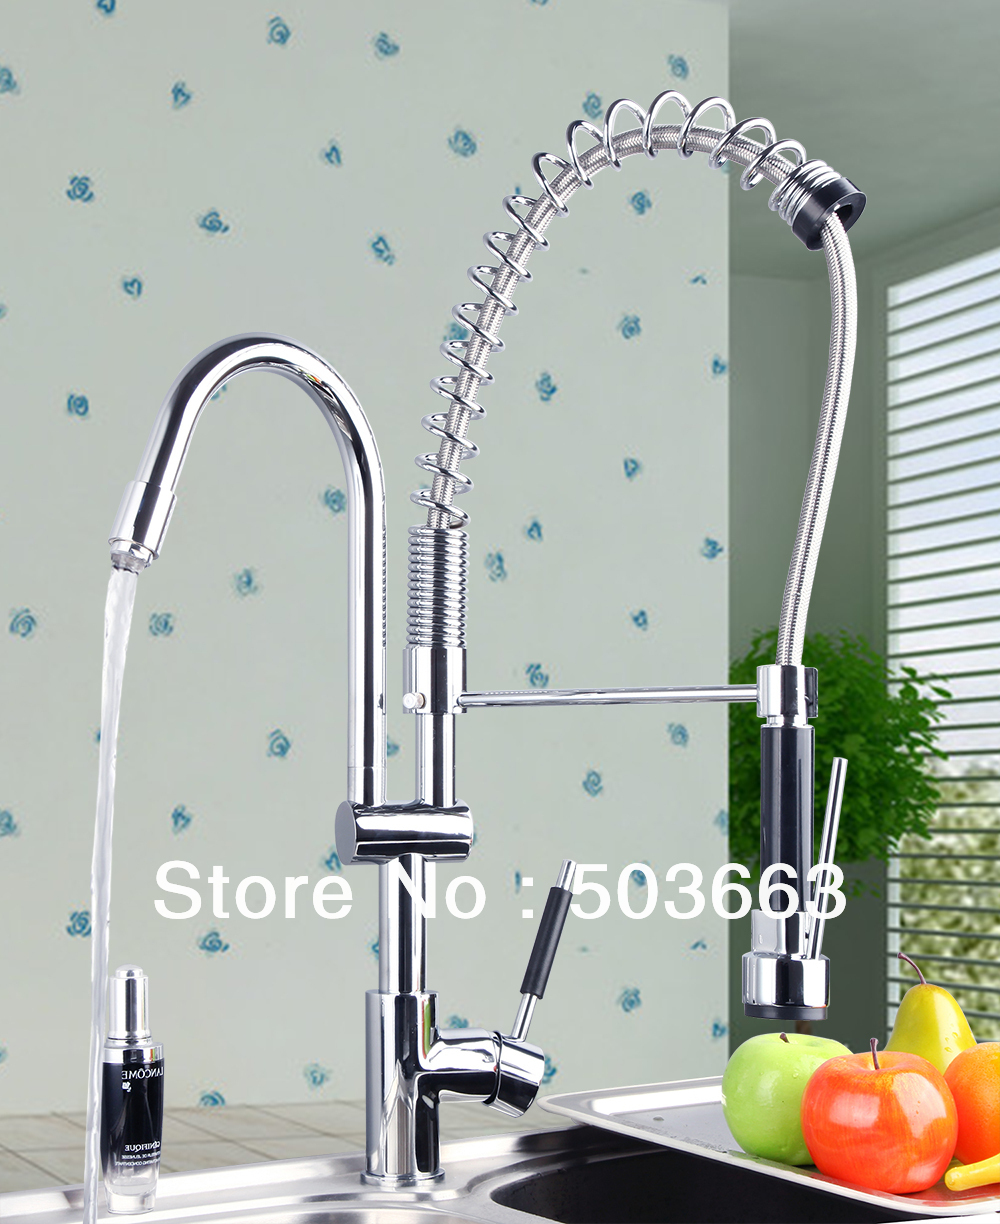 Double Handles Free Chrome Brass Water Kitchen Faucet Swivel Spout Pull Out Vessel Sink Single Handle Mixer Tap MF-268 antique brass swivel spout dual cross handles kitchen